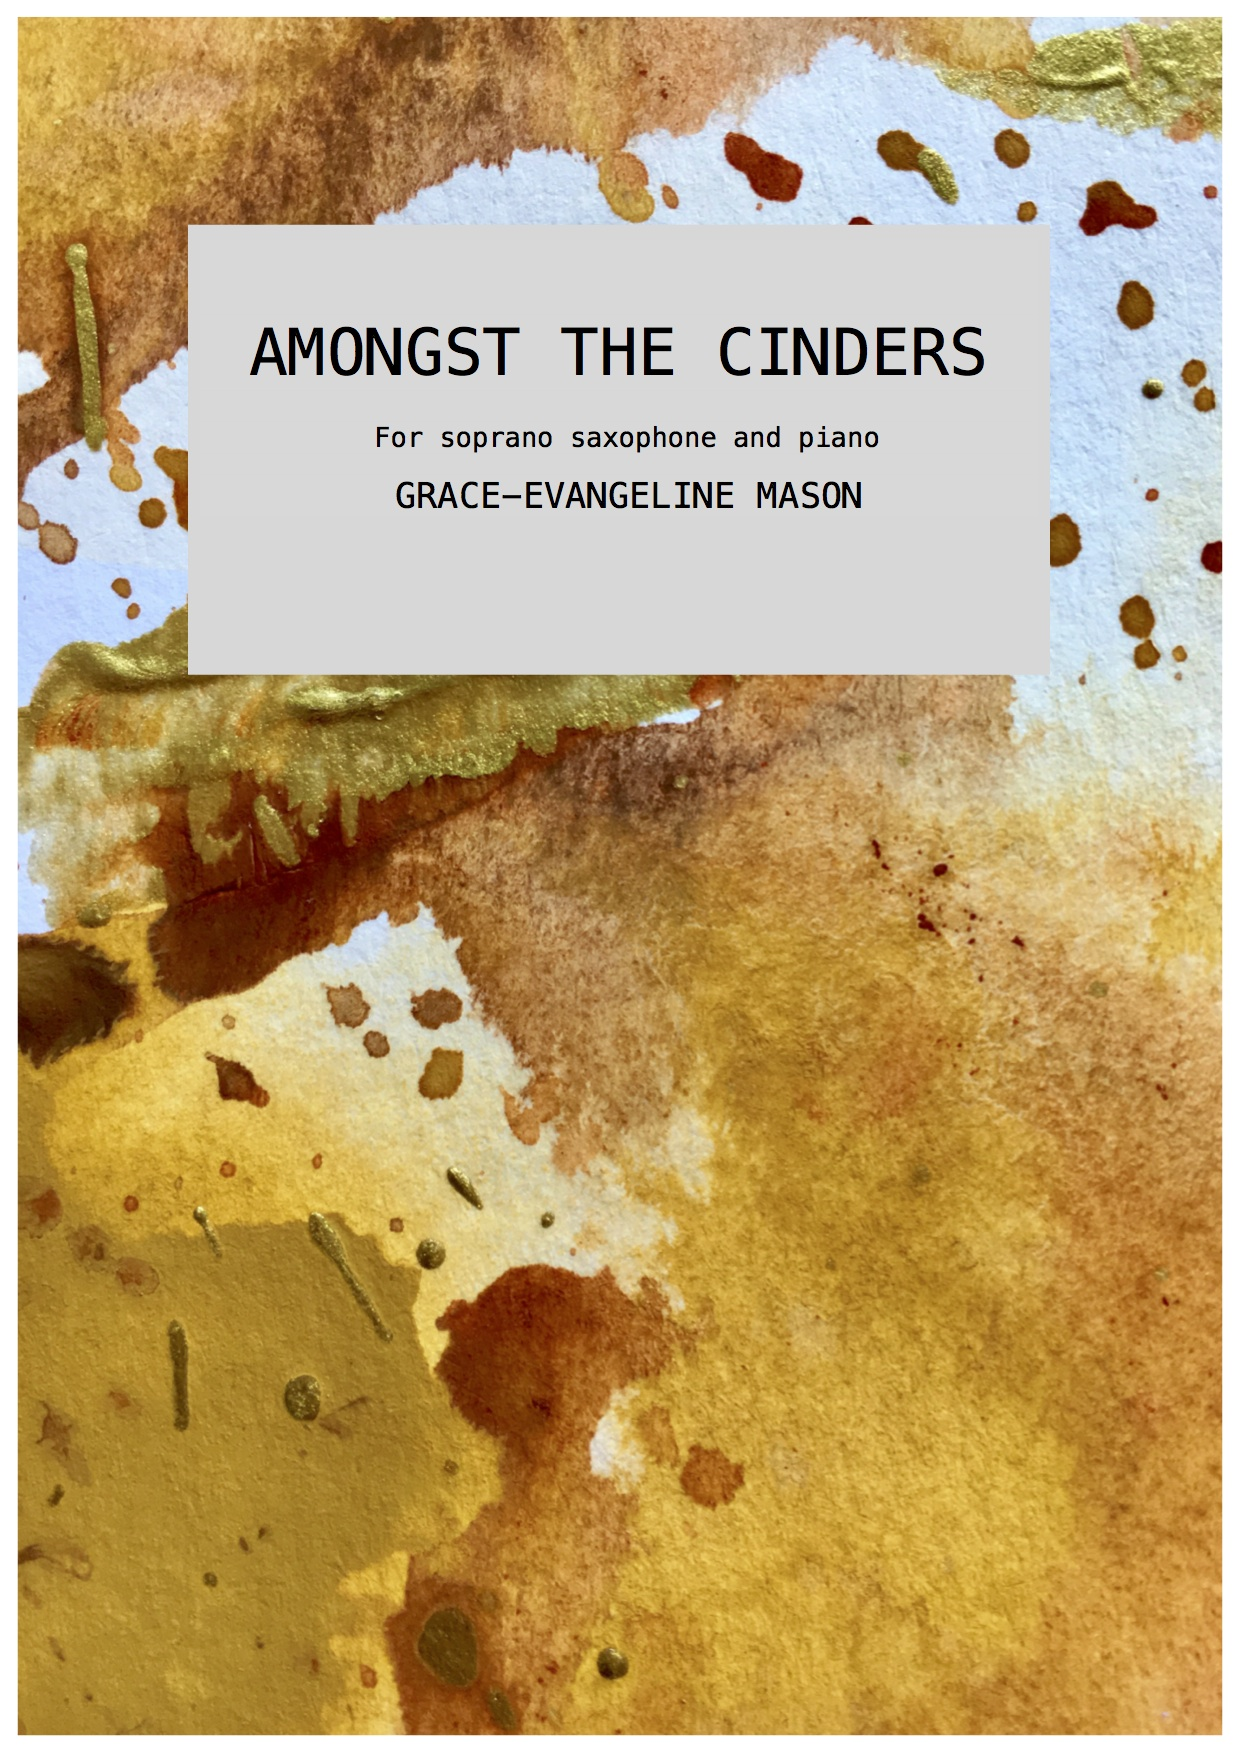 AMONGST THE CINDERS (2017) - For soprano saxophone and pianoDuration: 4'Commissioned by saxophonist Gillian Blair for world premiere at EurSax 2017, Porto. (12/07/17)UK Premiere by Gillian Blair as part of the Borough New Music Festival, London (19/01/19)'AMONGST THE CINDERS is a short work for soprano saxophone and piano that seeks to create a dense, heavy and haunting atmosphere to echo the aftermath of a burnt-out fire. The piece builds into moments of ignition to reflect the cinders that no longer produce flames but still contain combustible matter within them. Therefore, throughout the piece, AMONGST THE CINDERS merges instances of eruption and stability, sparks and cinders.'©G.E.M.2017©Cover Image: 'CINDERS' Painting by Grace-Evangeline Mason 2017